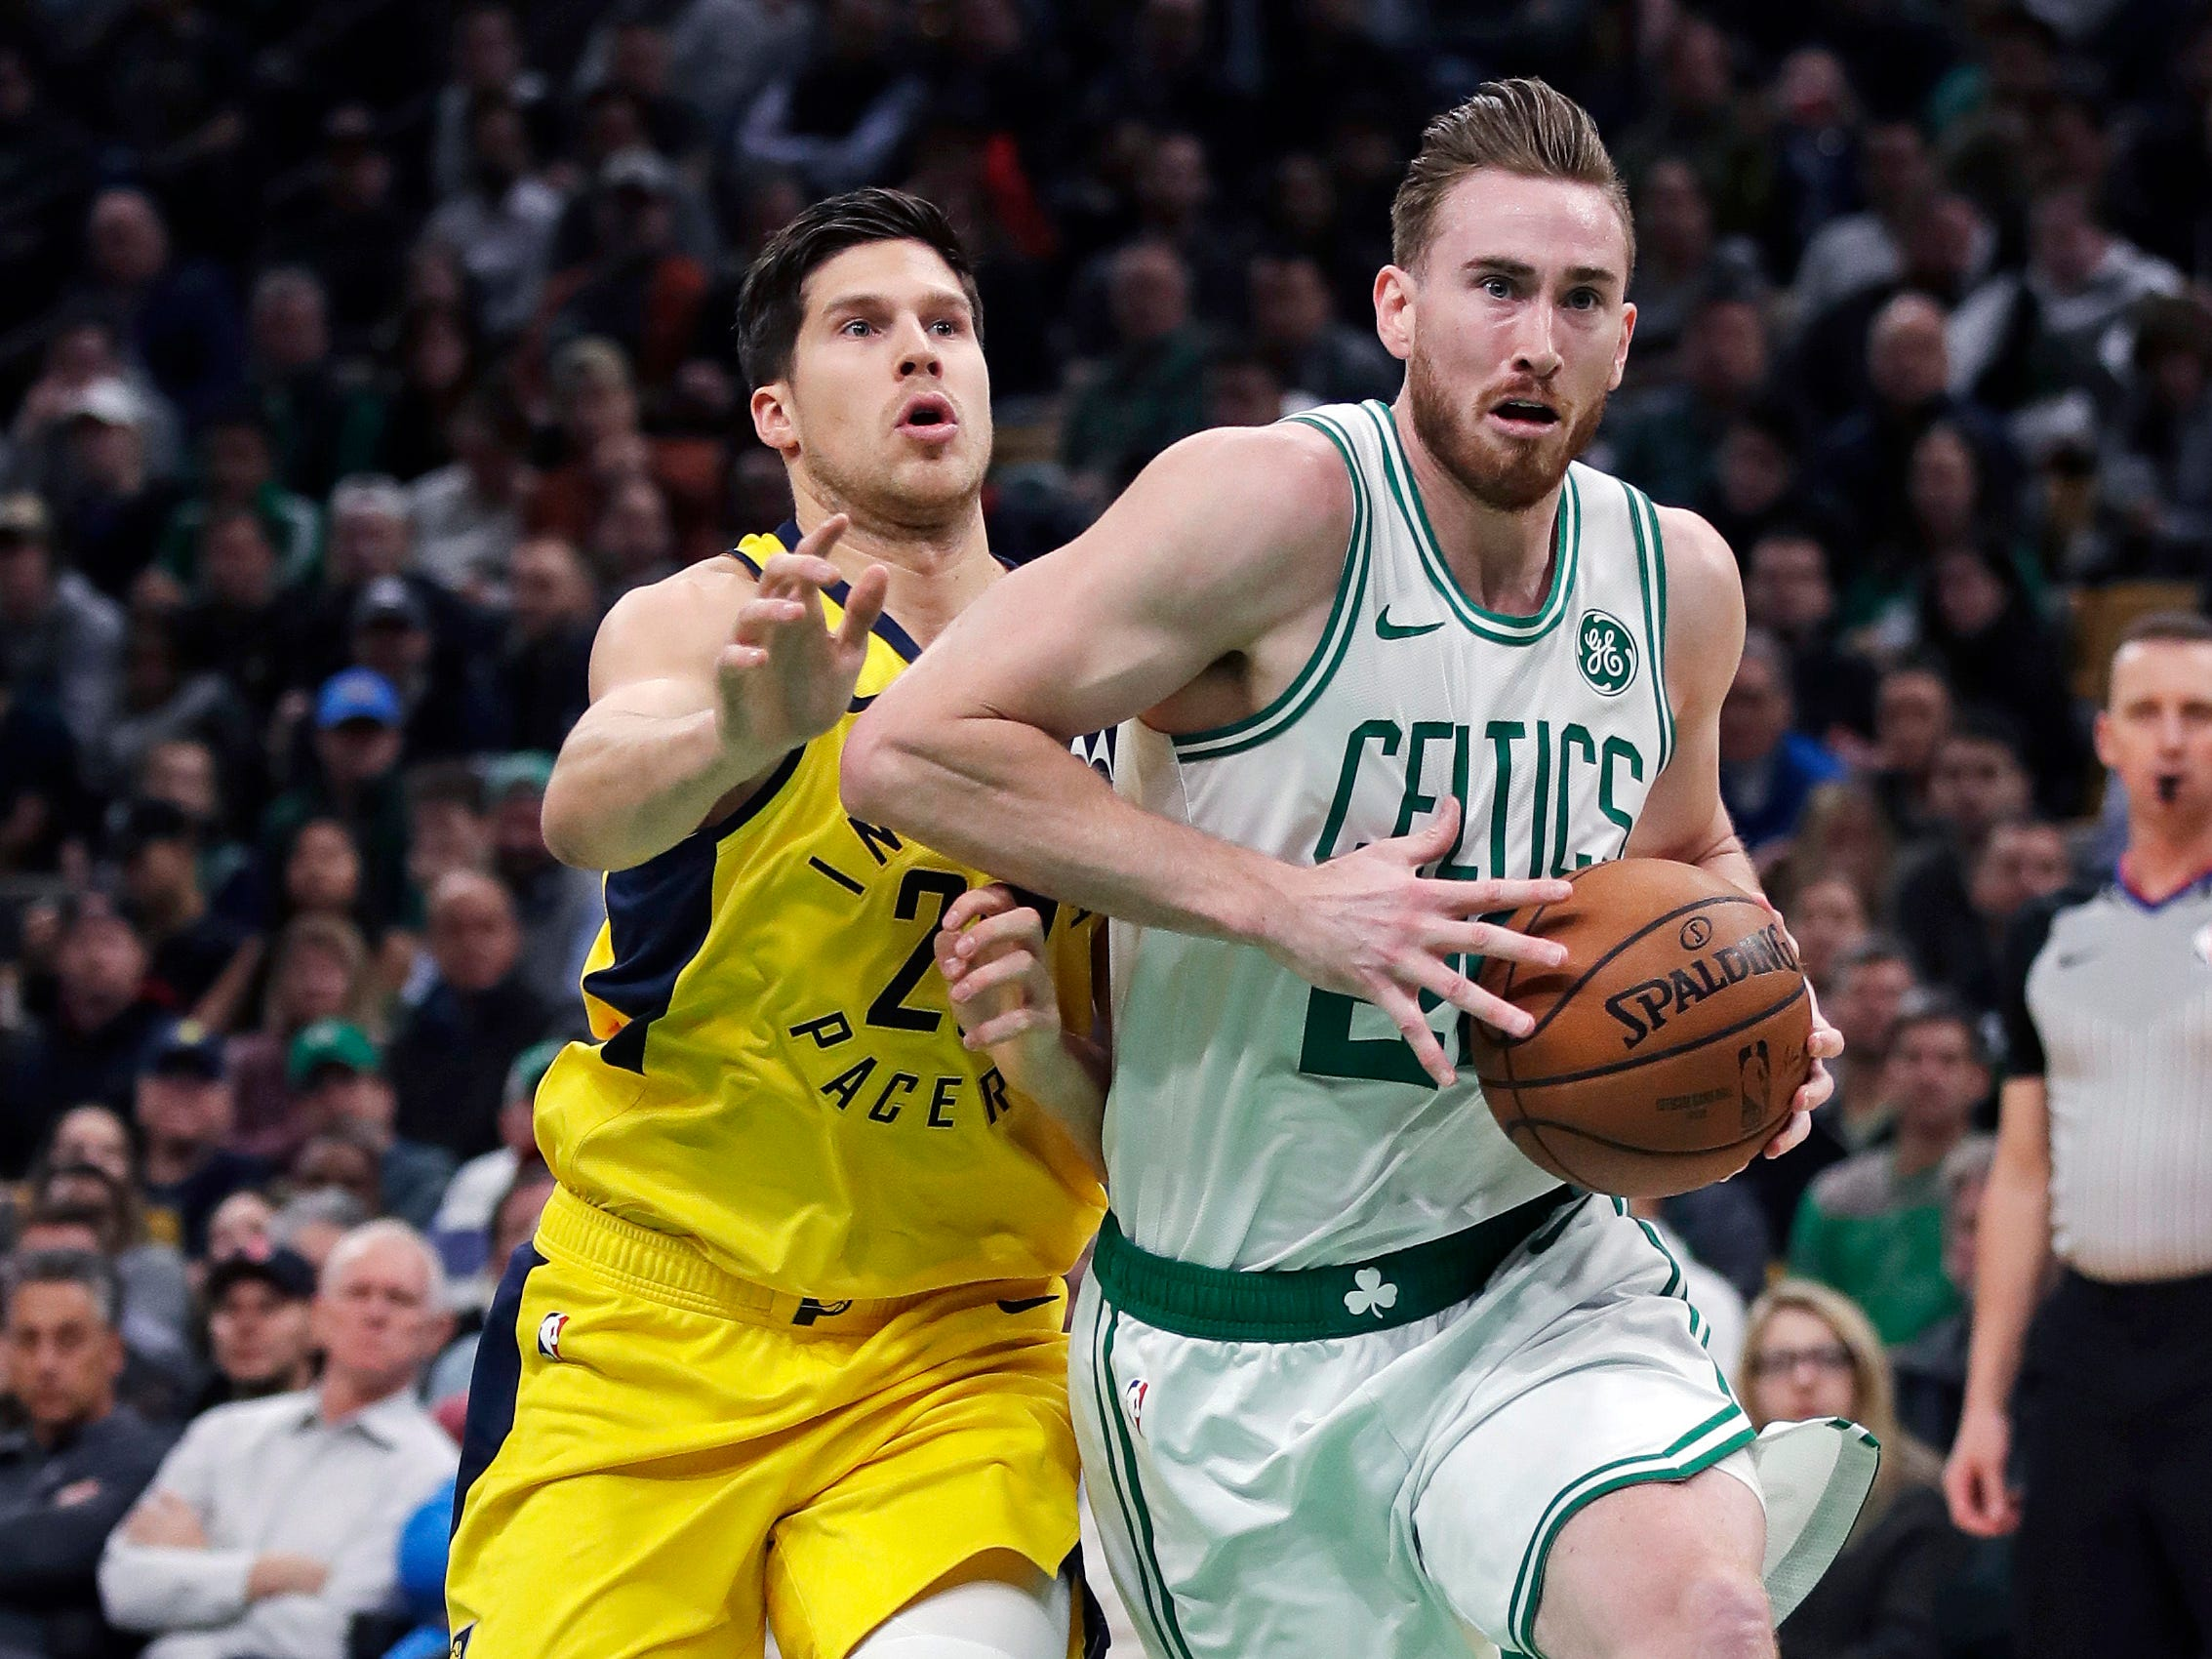 Boston Celtics forward Gordon Hayward, right, drives to the basket past Indiana Pacers forward Doug McDermott, left, during the second quarter of an NBA basketball game in Boston, Wednesday, Jan. 9, 2019.